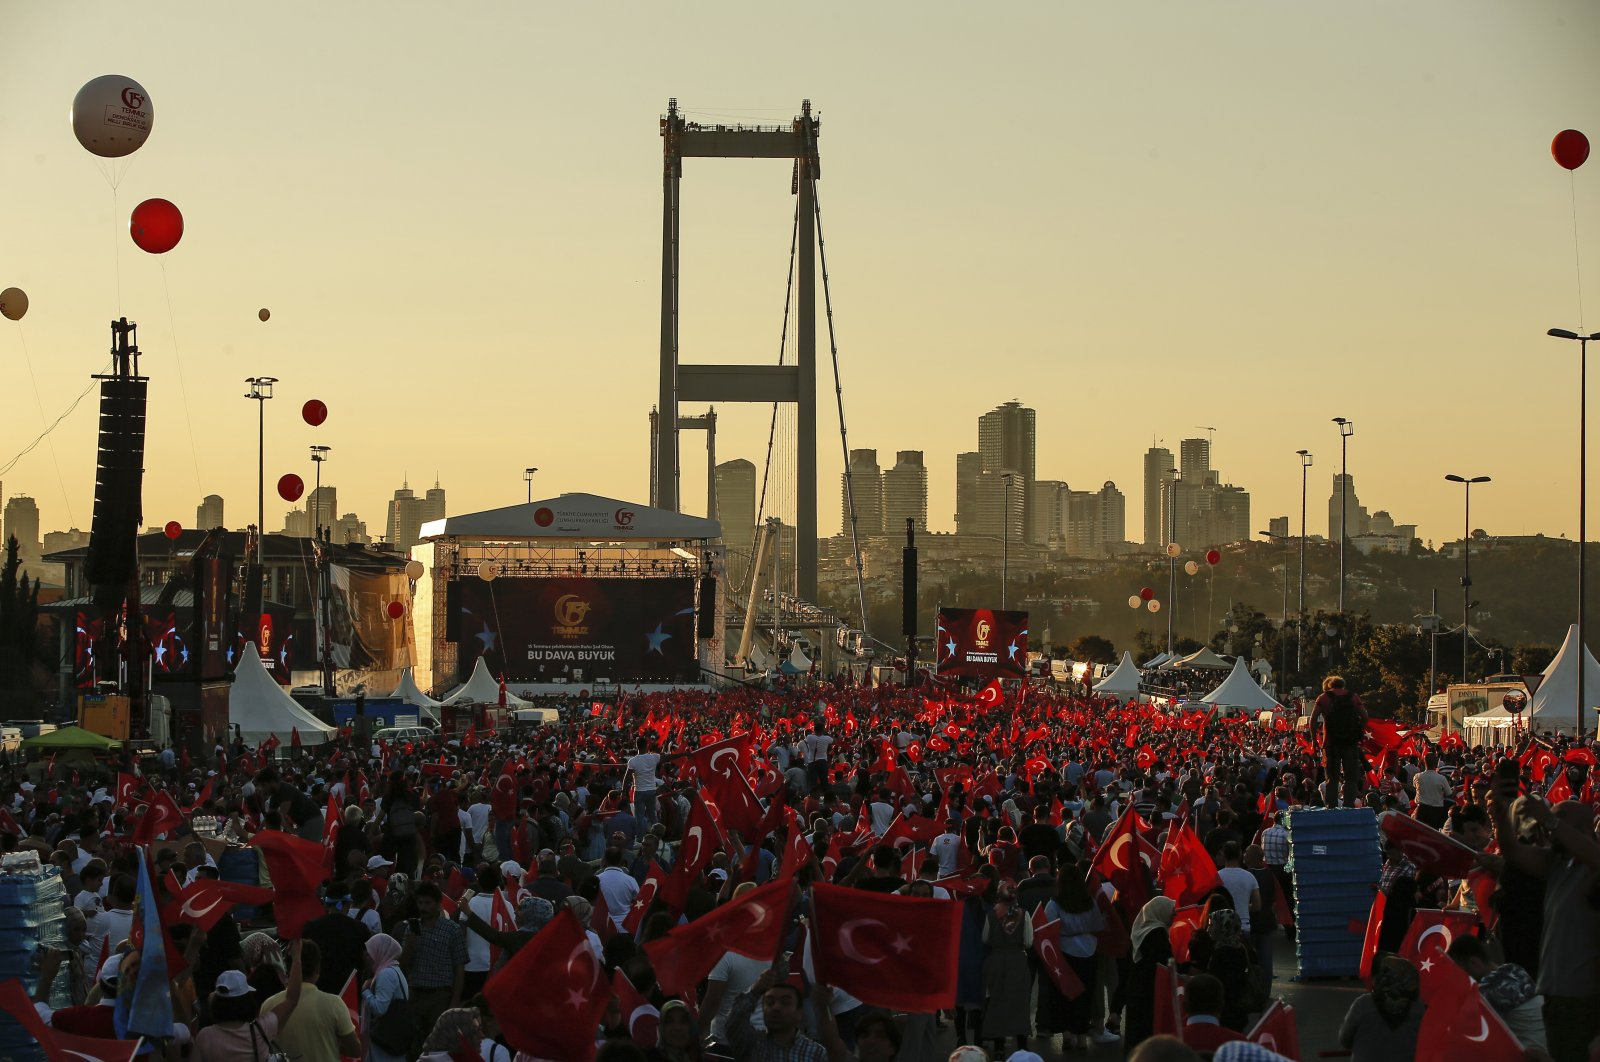 People wave Turkish flags on the road leading to the July 15 Martyrs Bridge, during a commemoration event for the second anniversary of a failed coup attempt, in Istanbul, Turkey, July 15, 2018. (AP Photo)